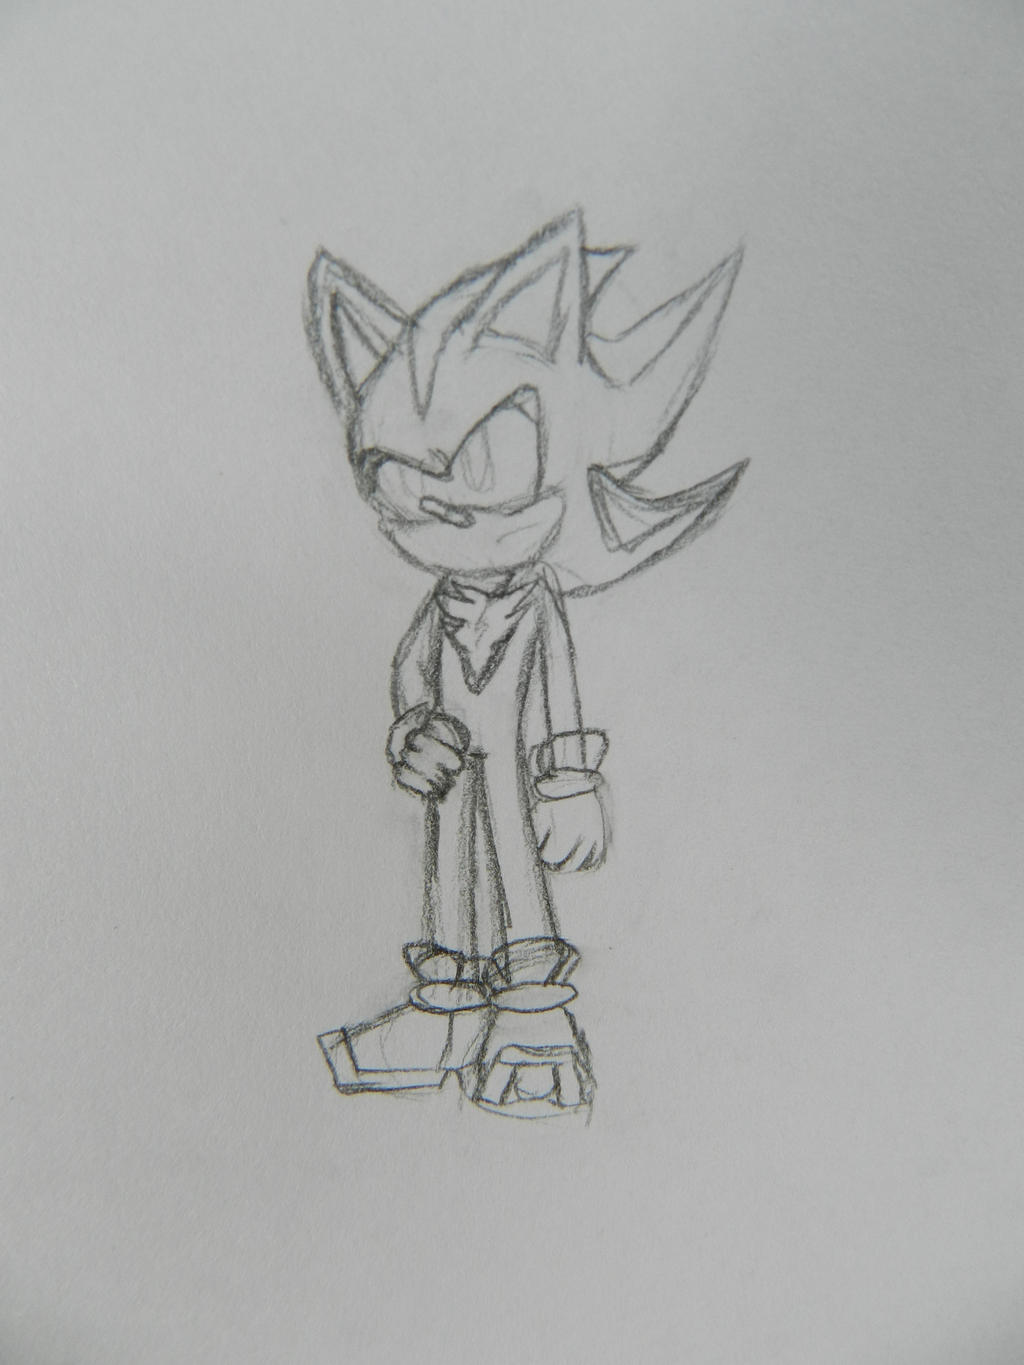 //*WIP*// Shadow the Hedgehog by Storming777